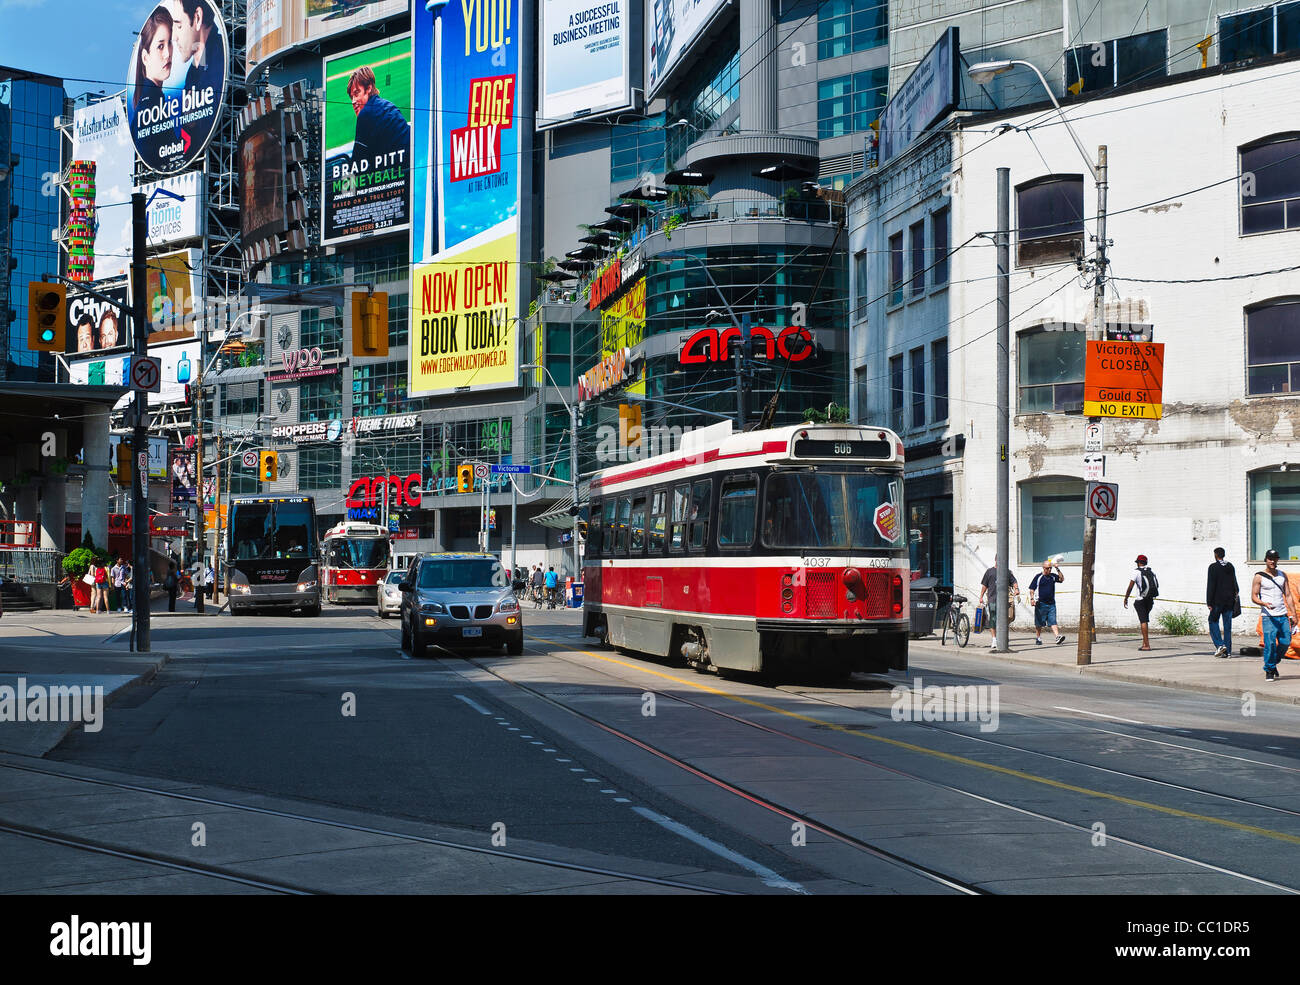 Streetcars, buses and cars on Dundas Street, near the Yonge-Dundas Square in Toronto, Ontario - Stock Image